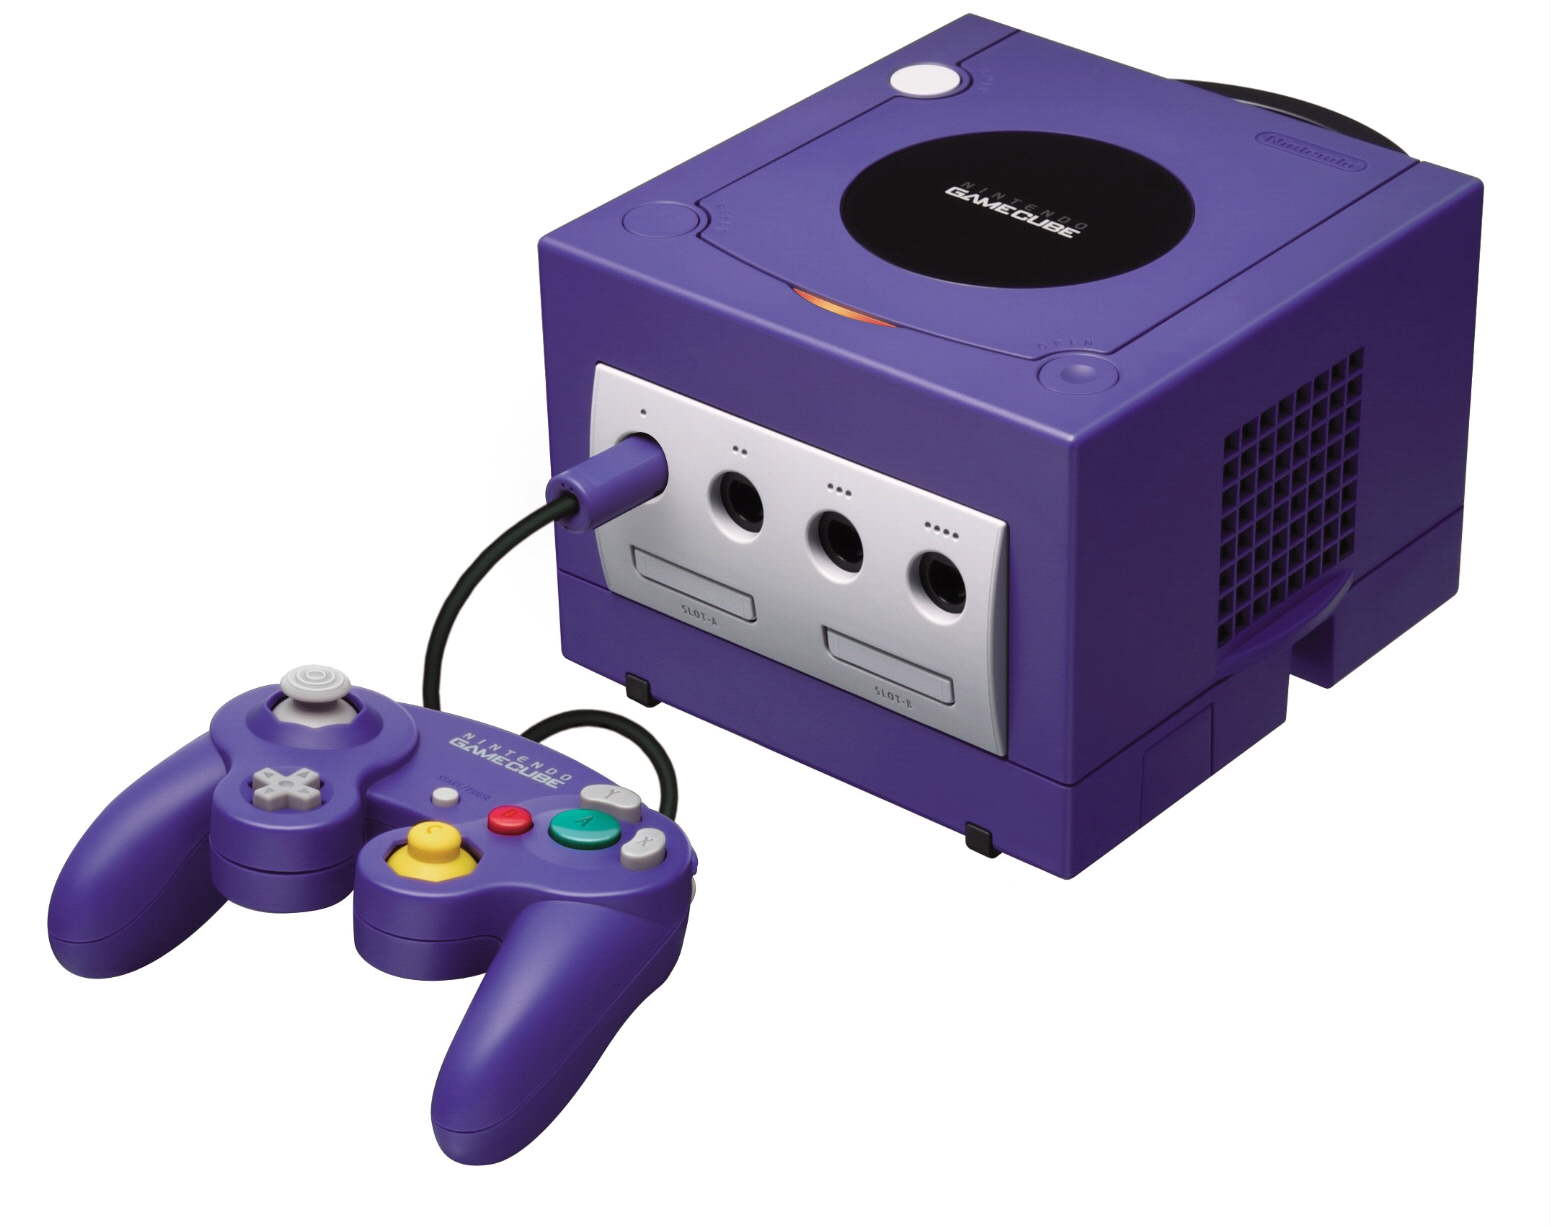 The best console ever that looks like a lunch box